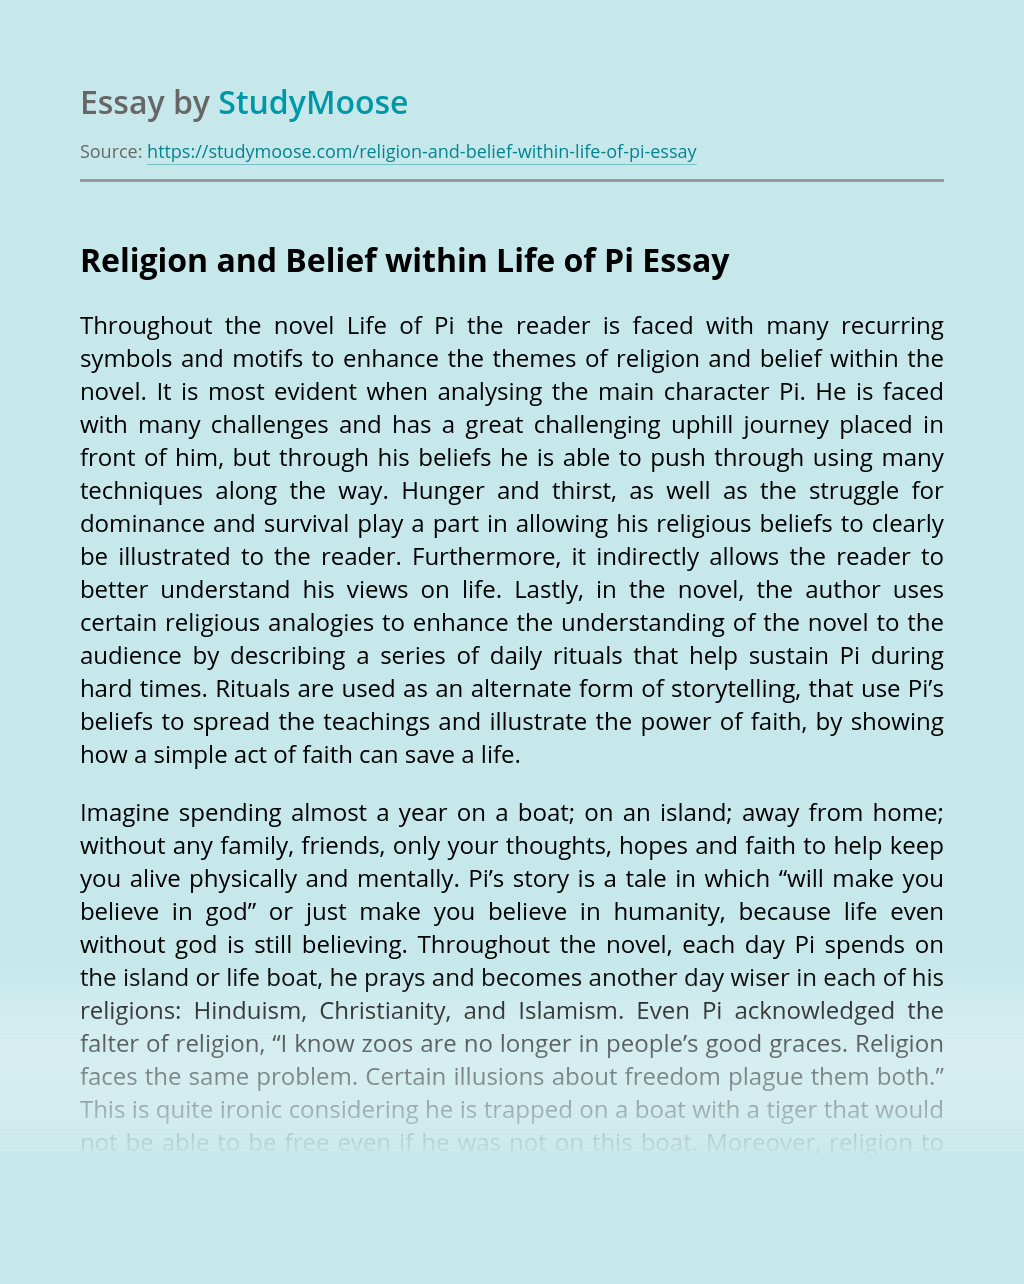 Religion and Belief within Life of Pi